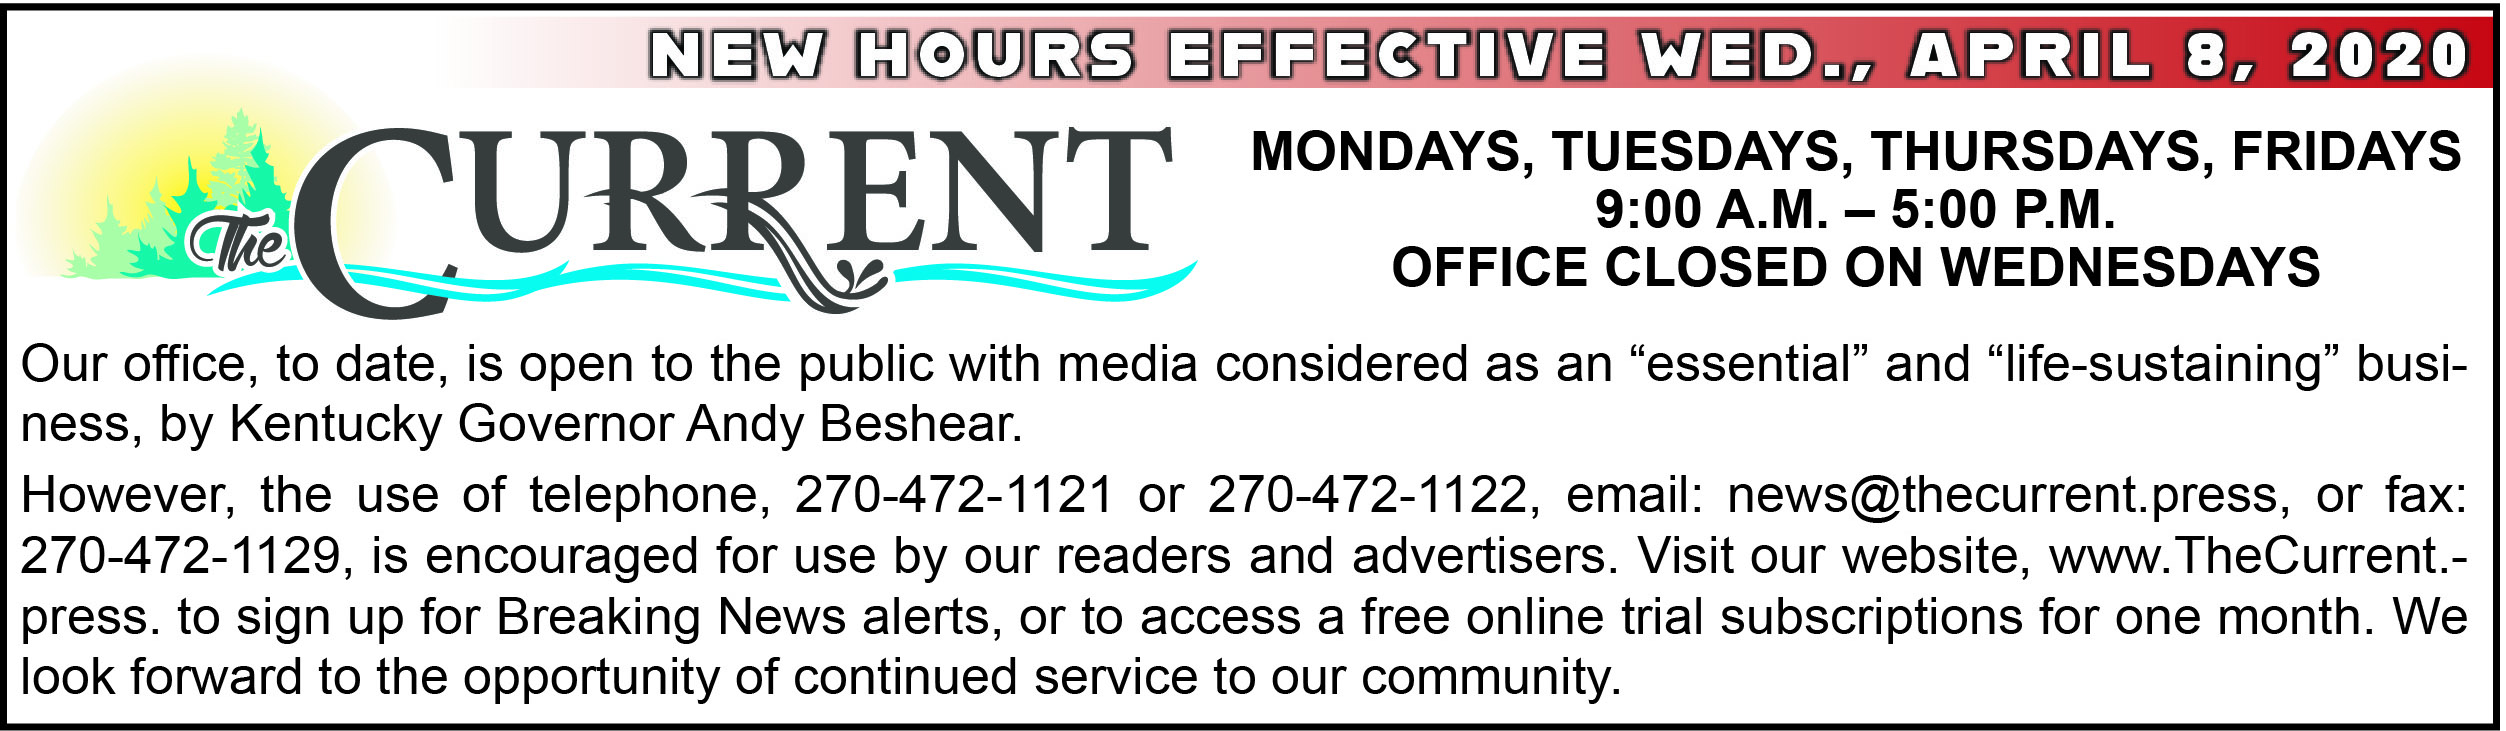 New Hours-House ad